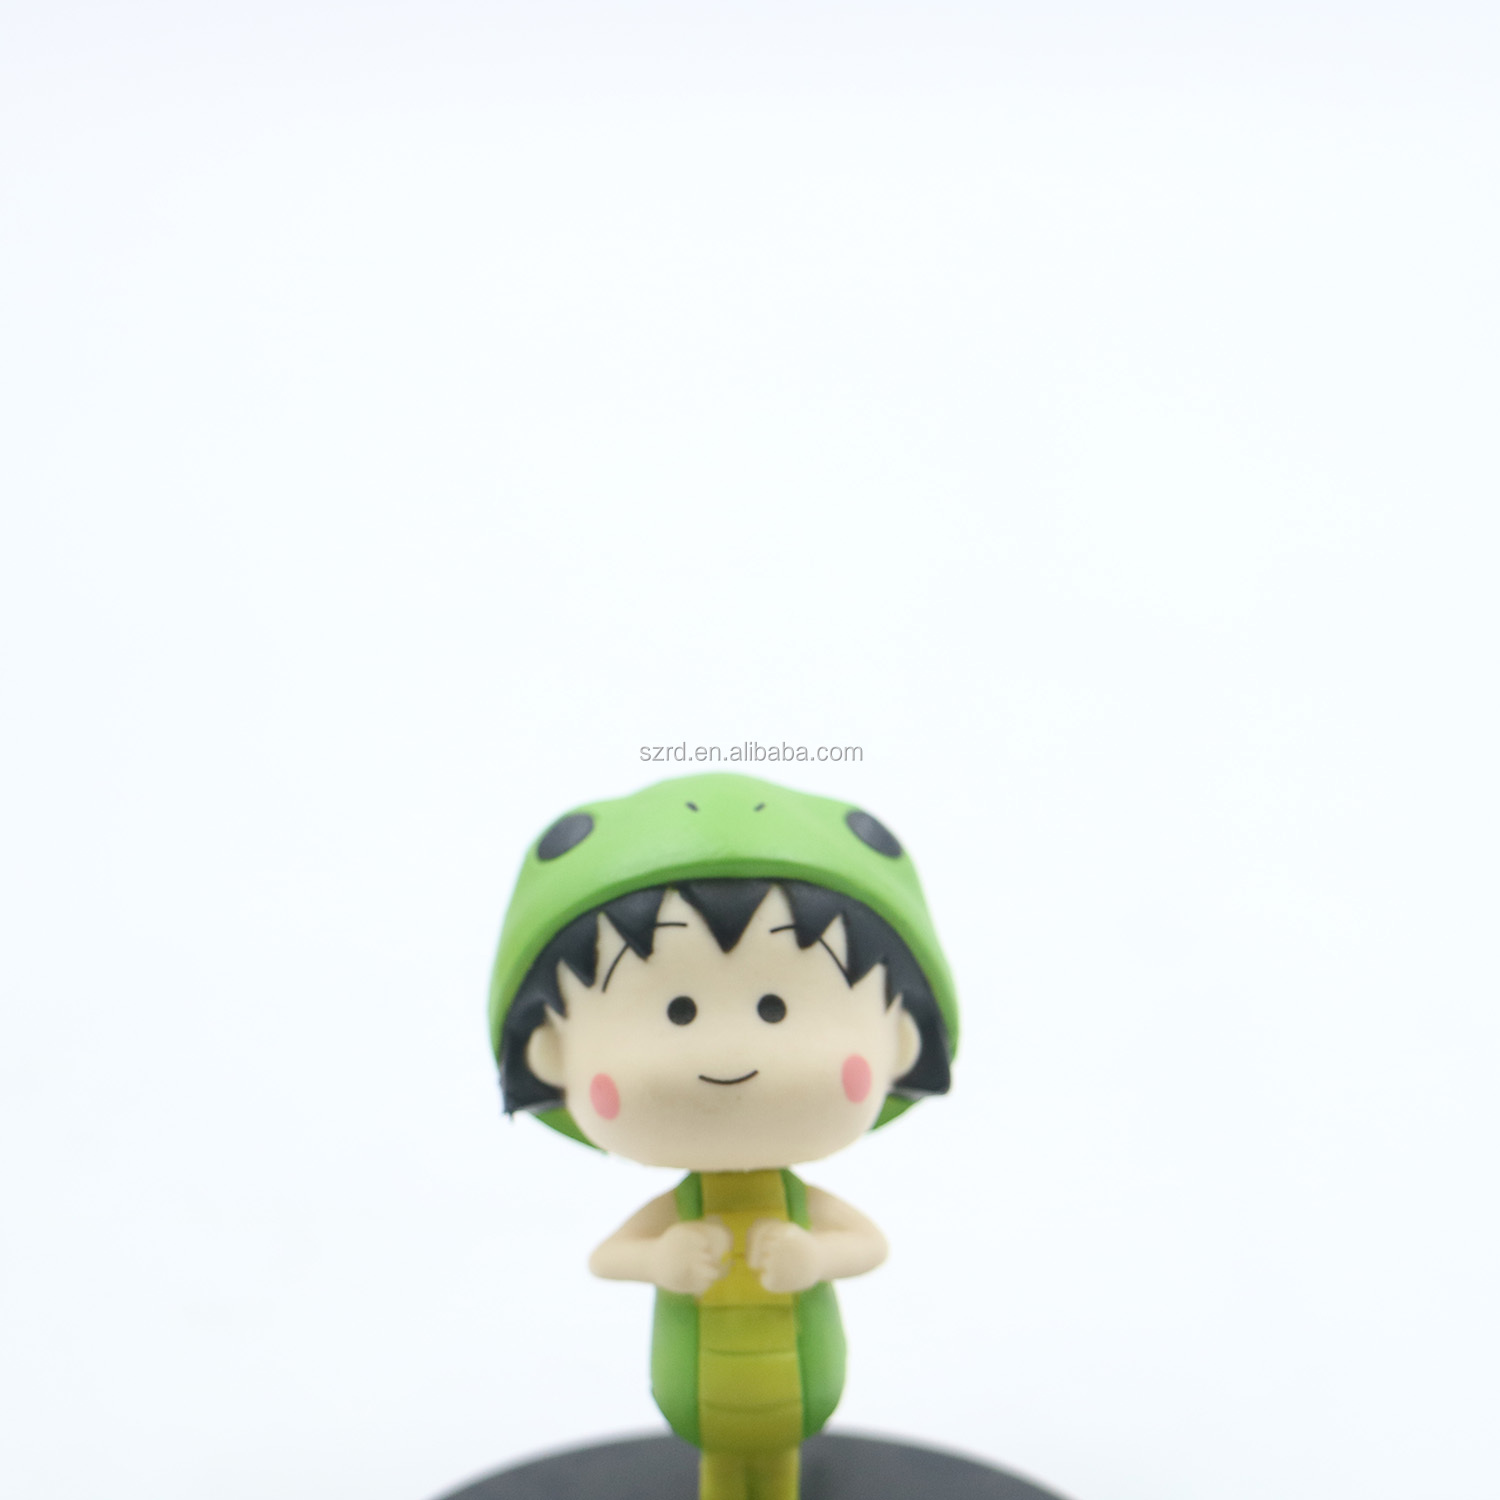 Customized pvc mini cartoon girl figure creative injection artwork product